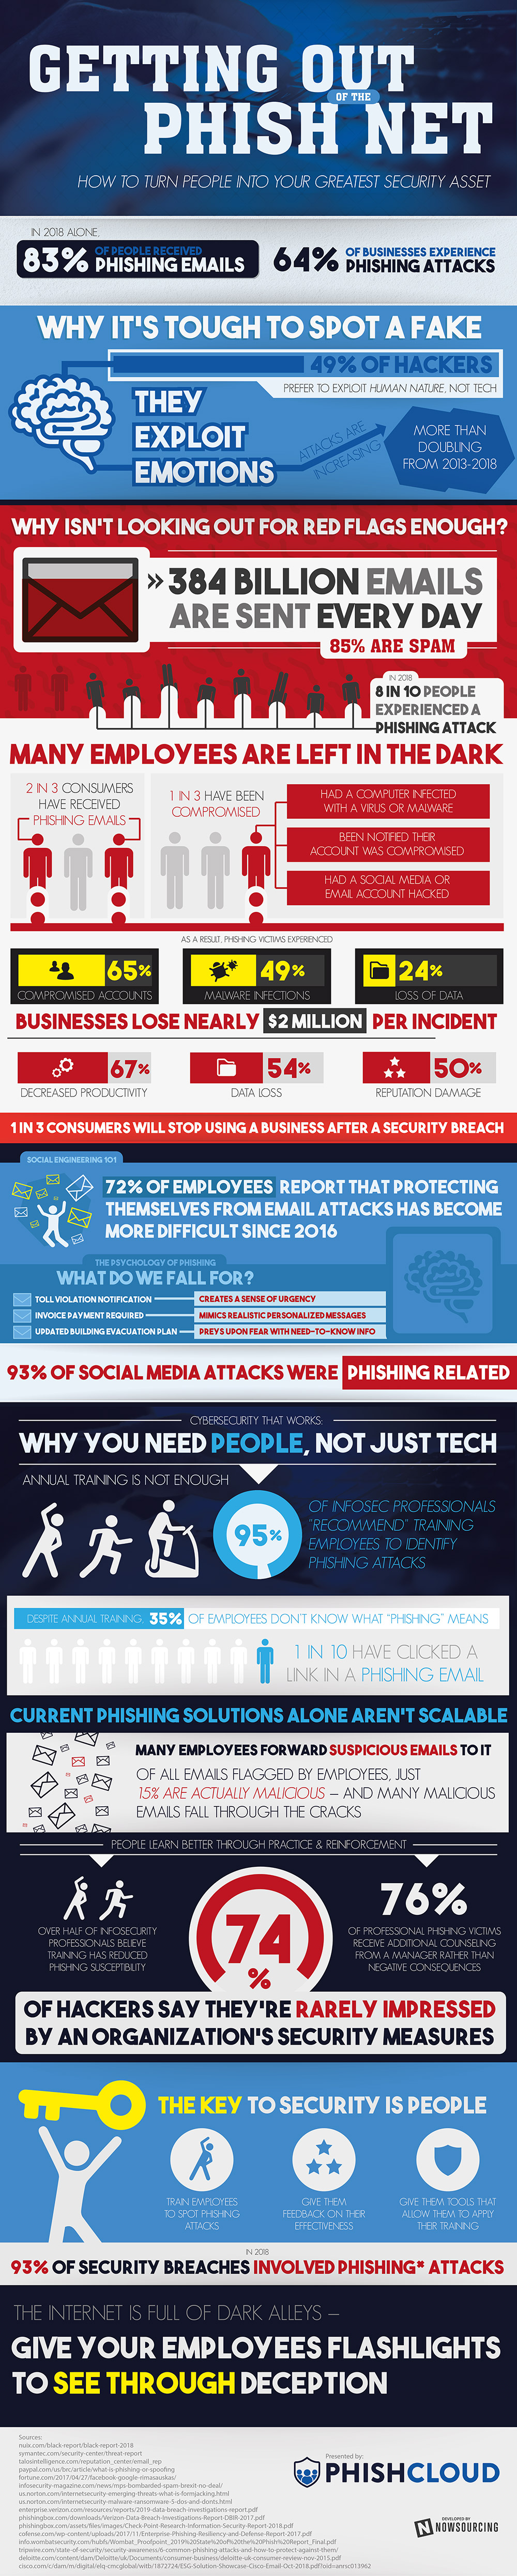 Get Your Business Out Of The Phish Net - Infographic